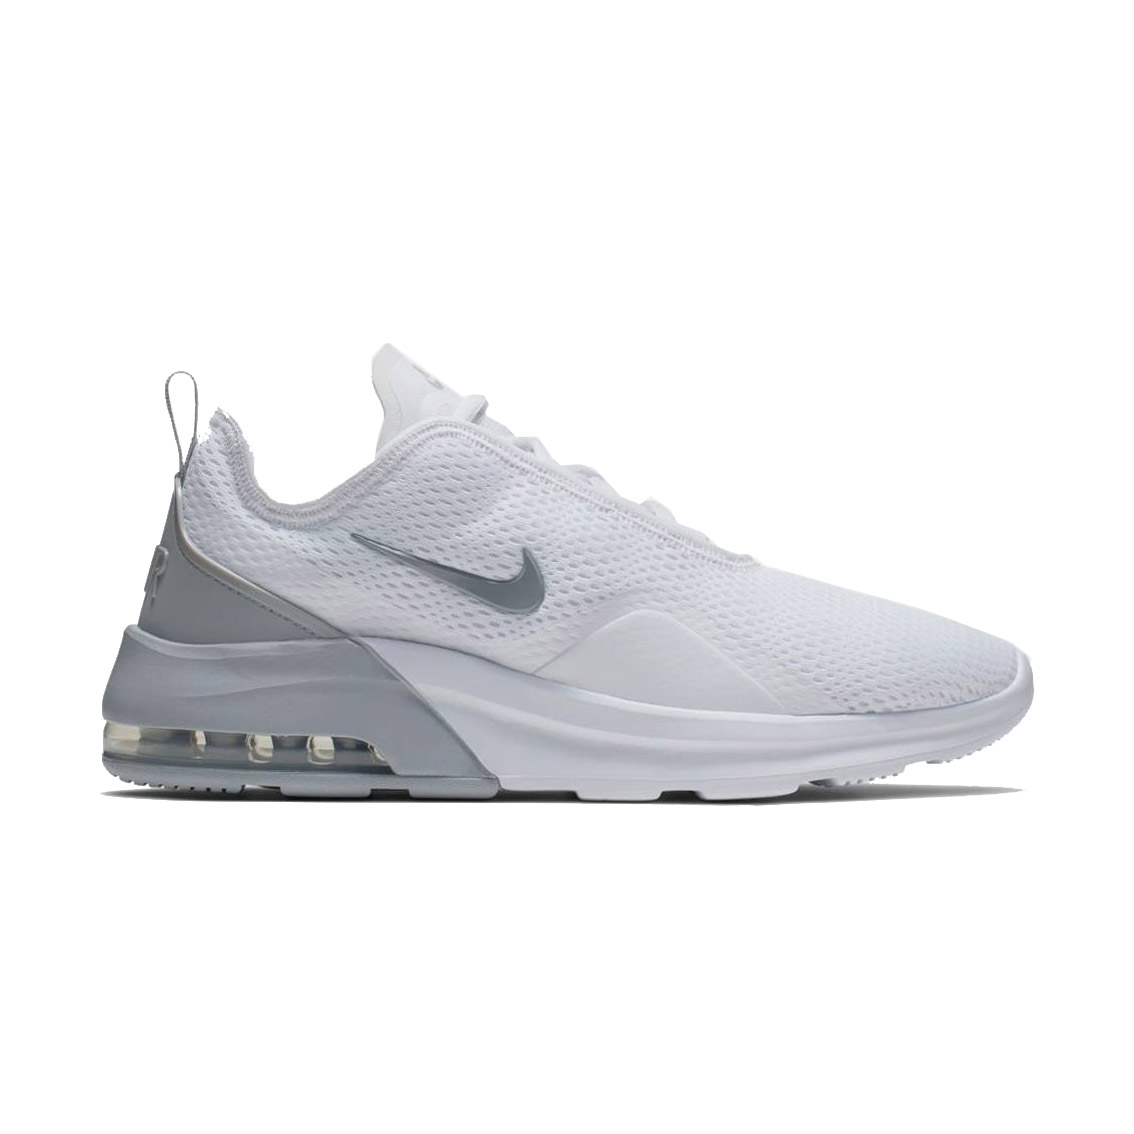 aad416e4d177 Nike Men s Air Max Motion 2 Trainers - White Wolf Grey